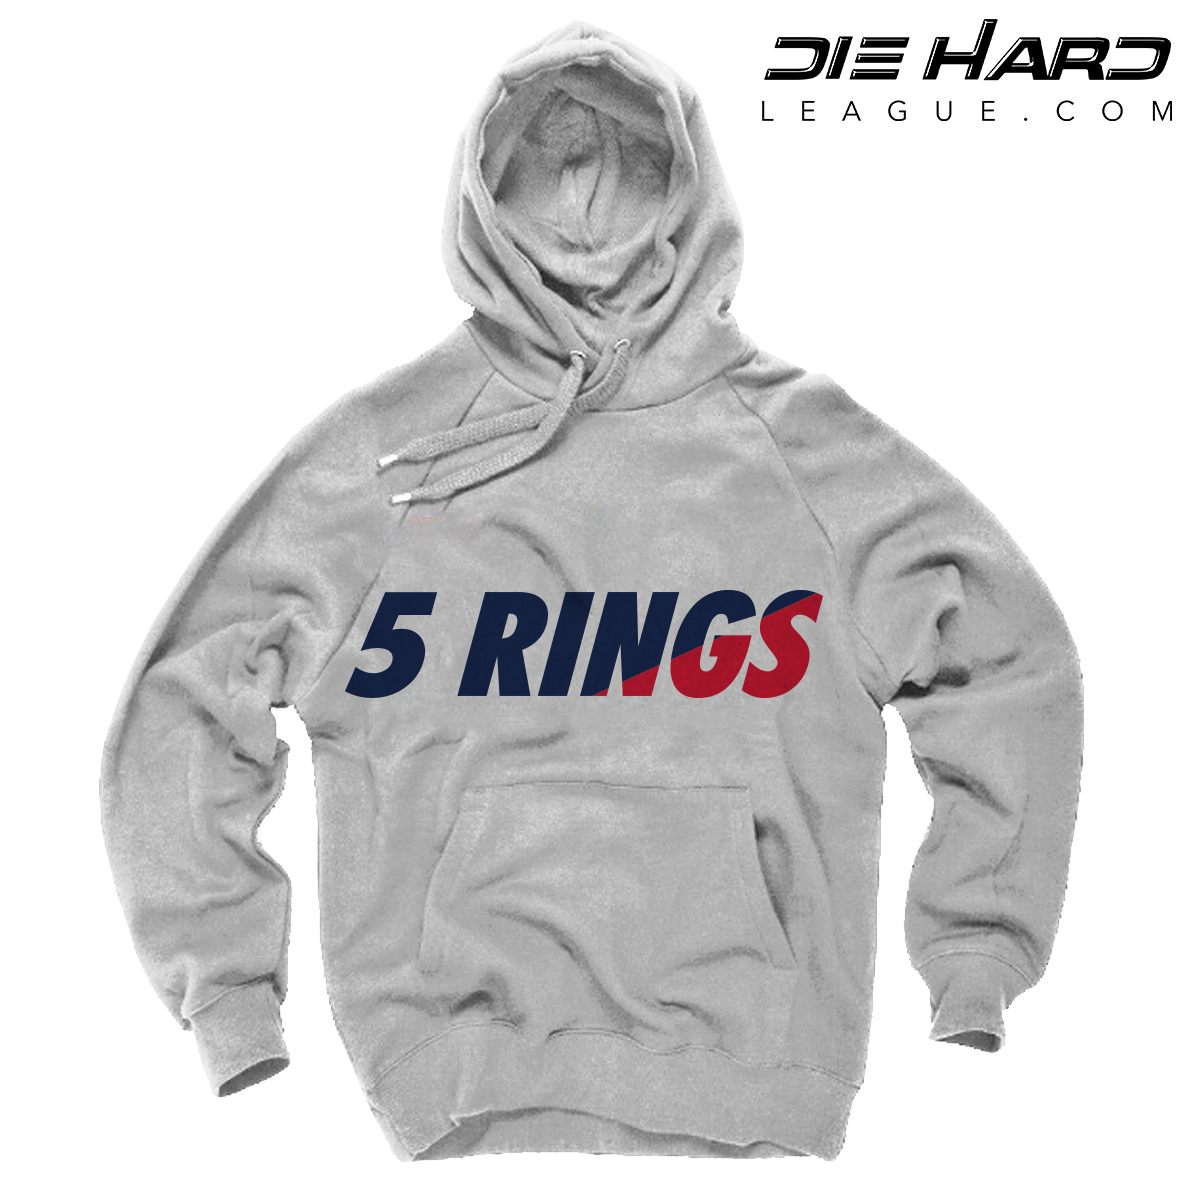 42aa3e7f Patriots Hoodie - New England Patriots 5 Rings White Sweater